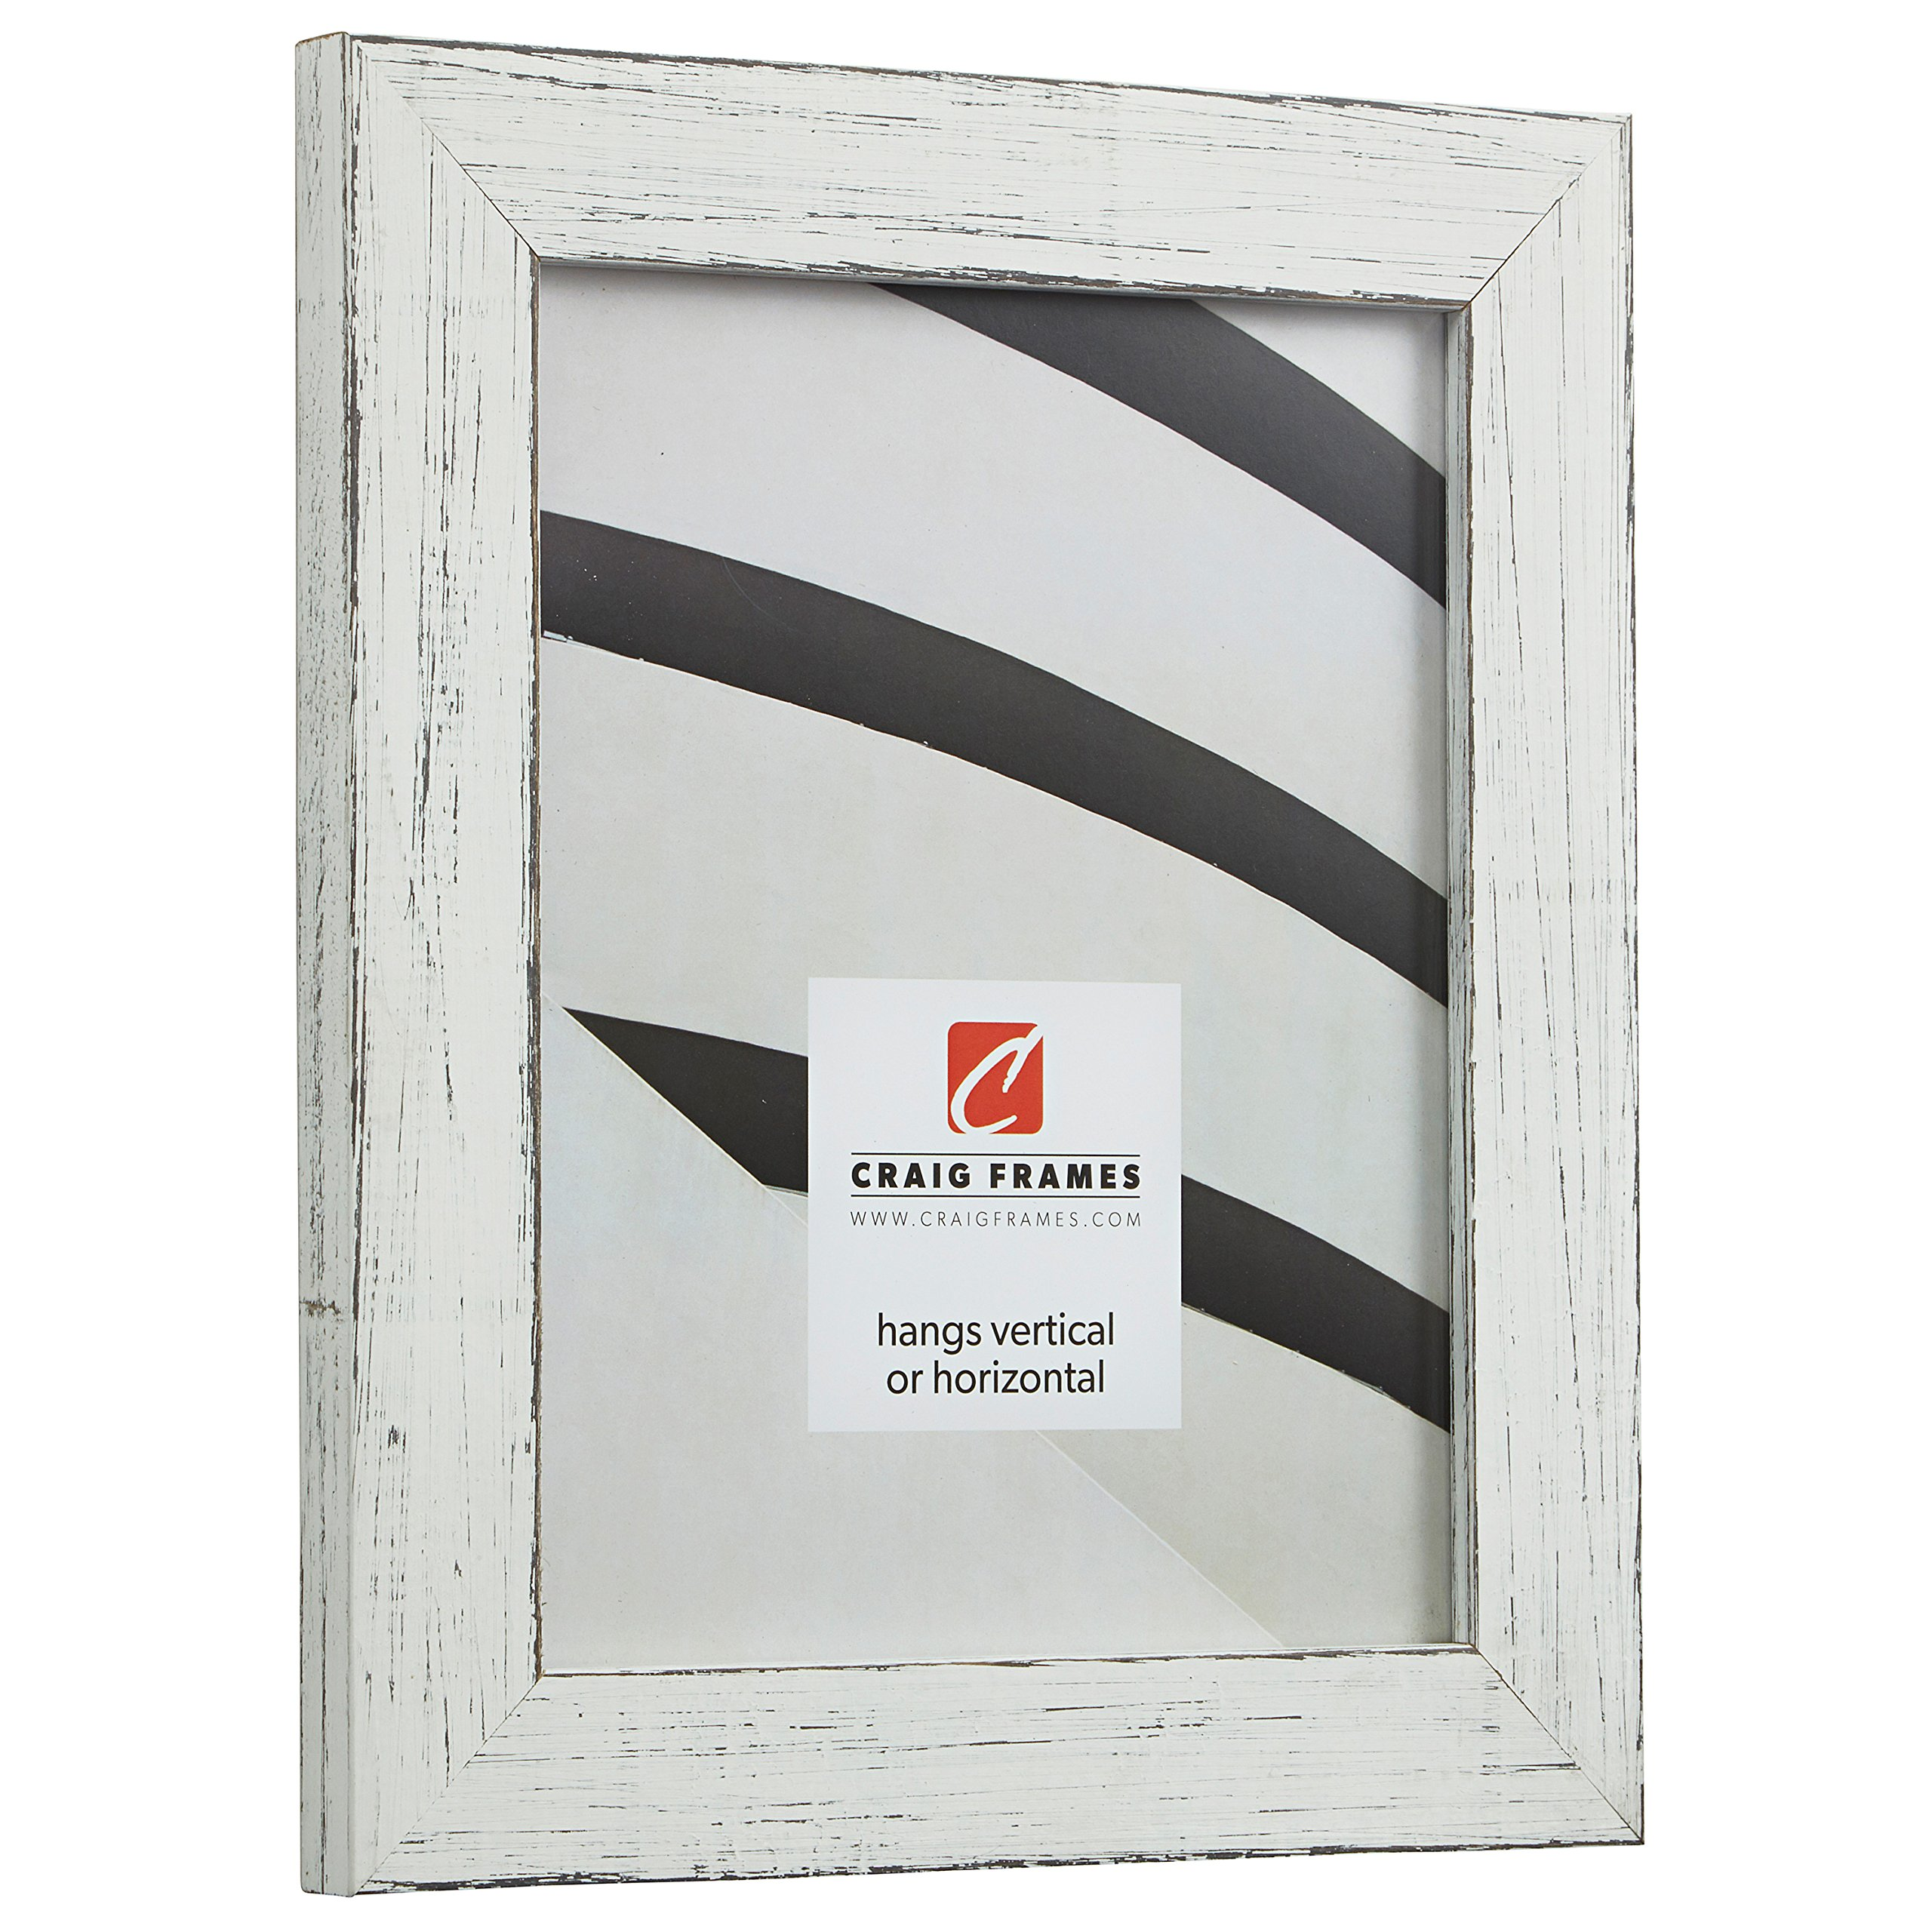 Craig Frames Jasper Picture Frame, 5 x 7 Inch, Country Marshmallow White by Craig Frames (Image #2)